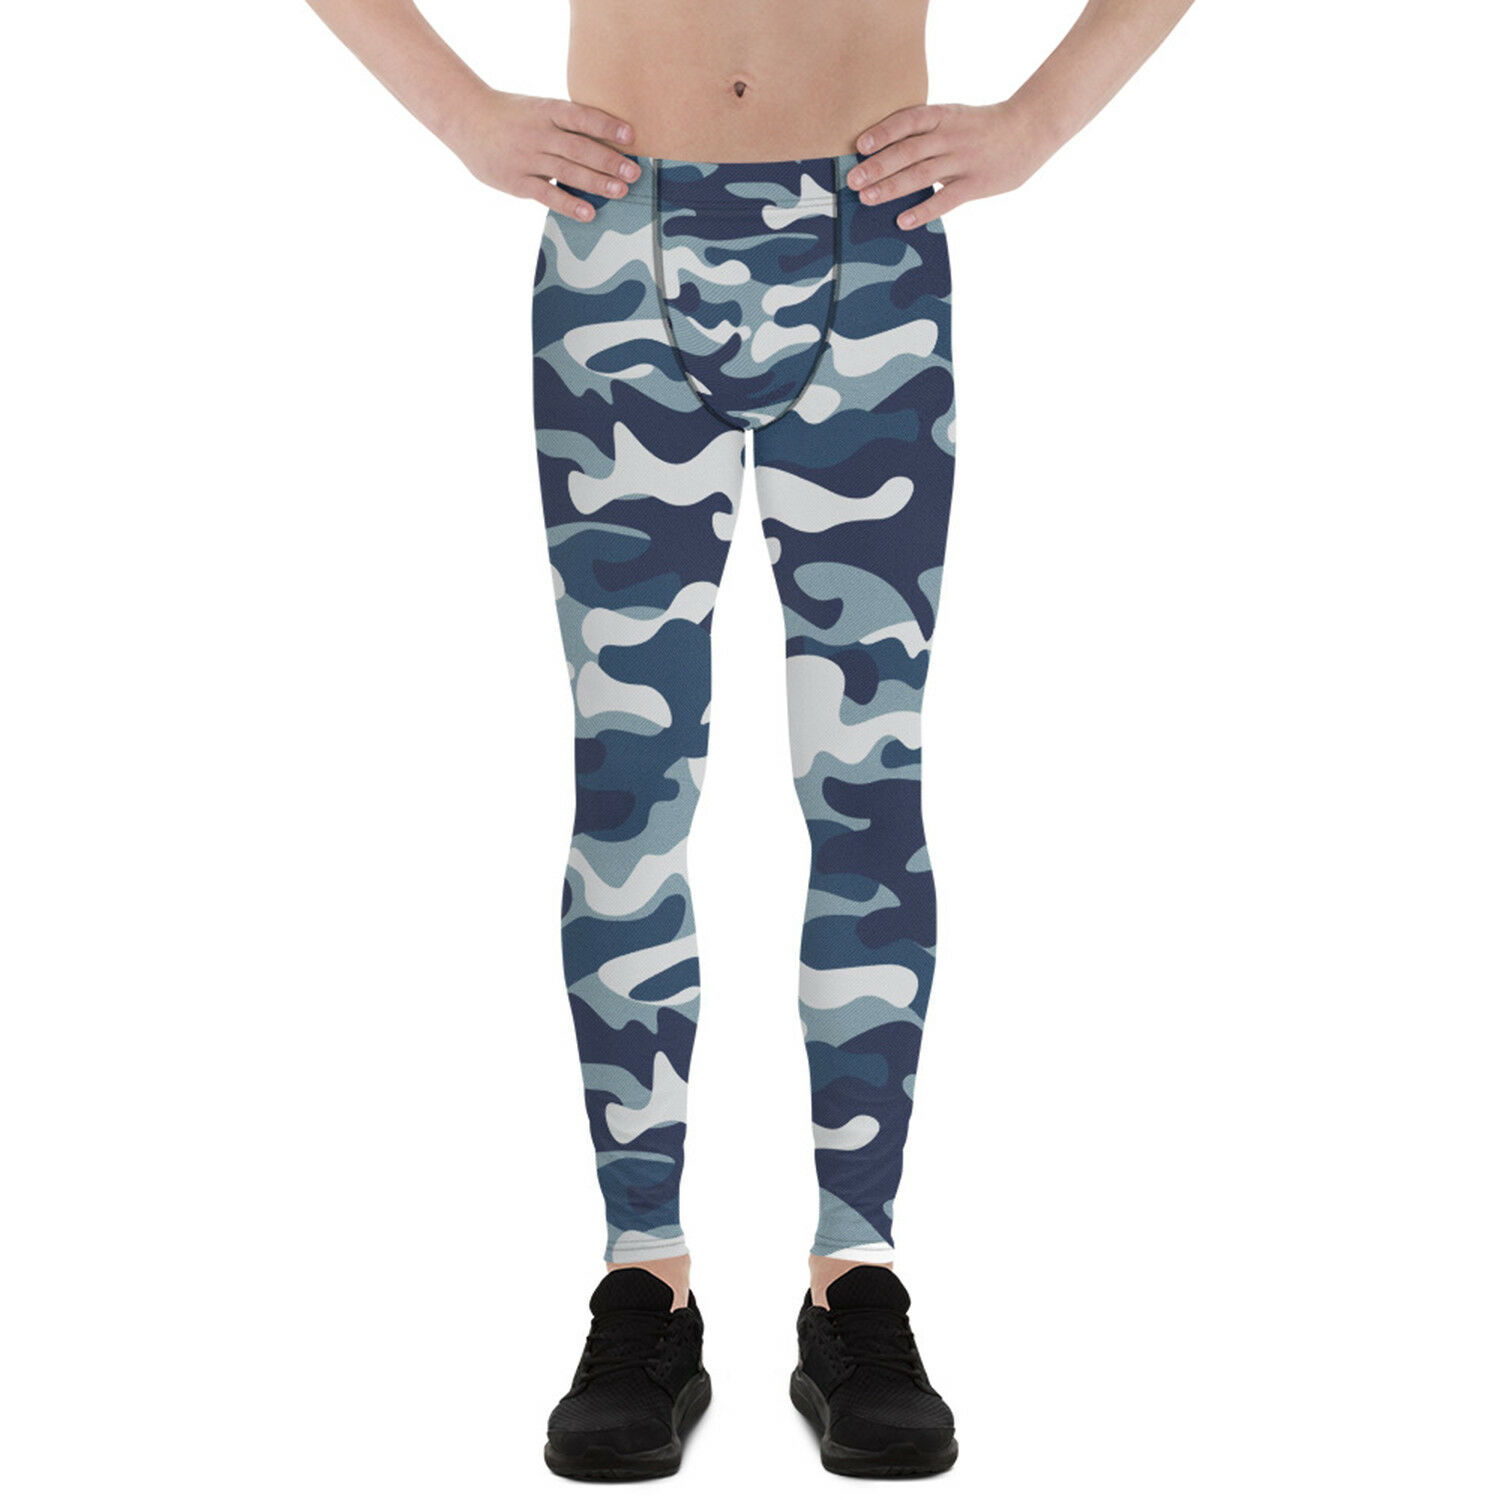 blu Camo Leggings For Men Camouflage Military Print Meggings Running Gym Pants